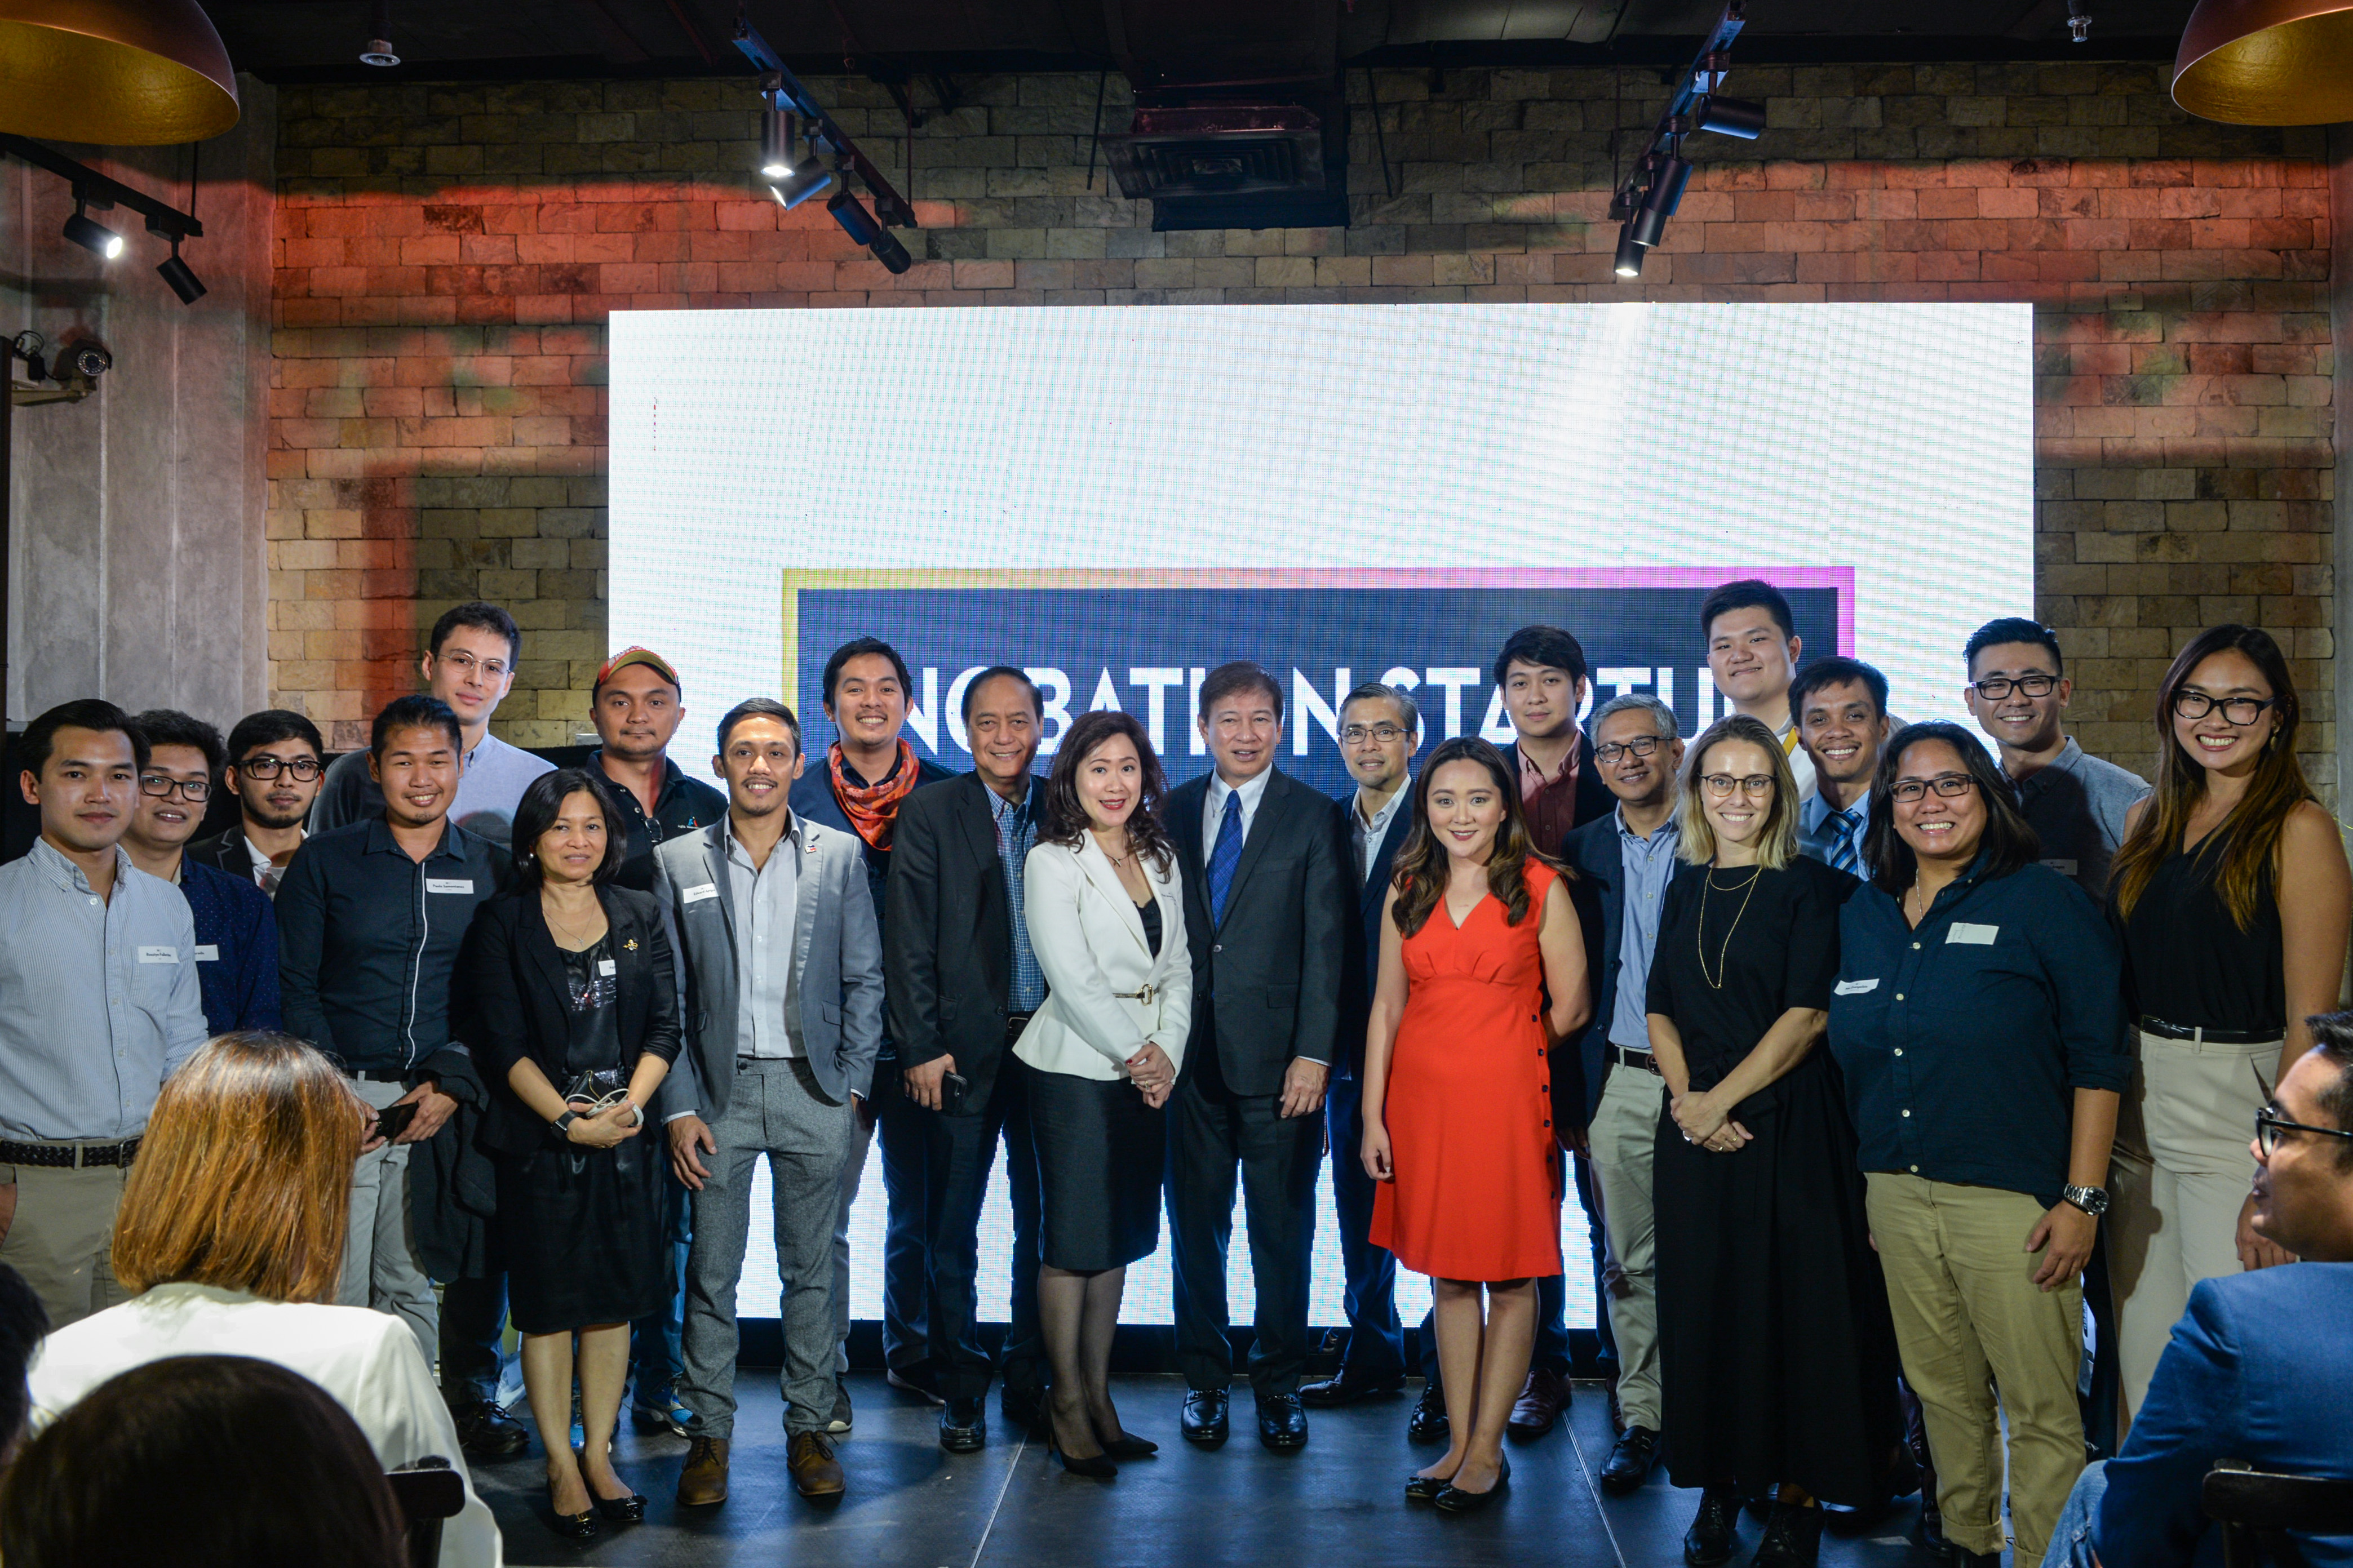 Events: High-Impact Tech Startups Get Boost From INQBATION